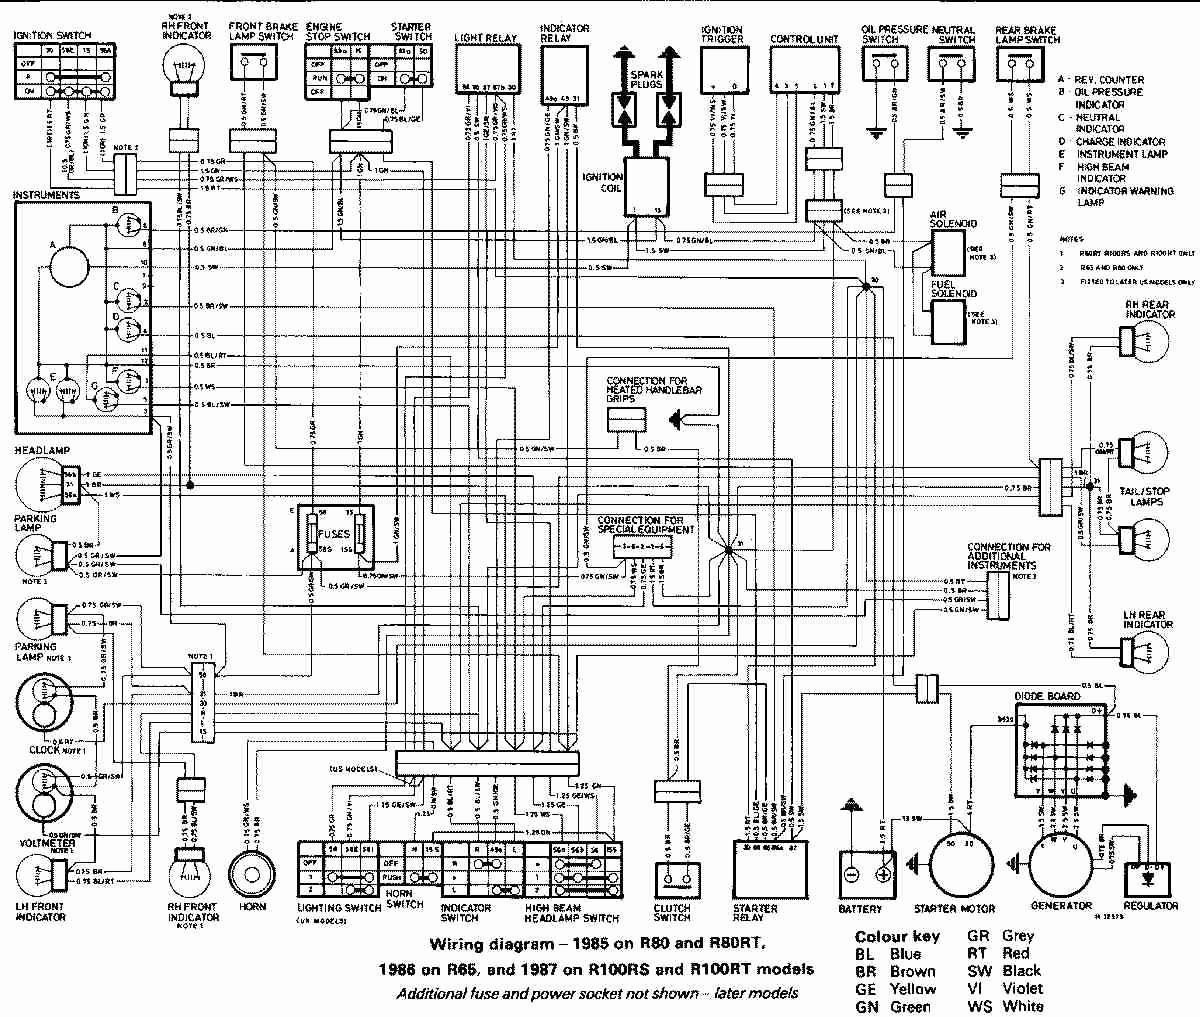 Bmw F650gs Wiring Diagram - 77 Camaro Fuse Box -  3phasee.yenpancane.jeanjaures37.fr | Bmw G650gs Sertao Wiring Diagram |  | Wiring Diagram Resource